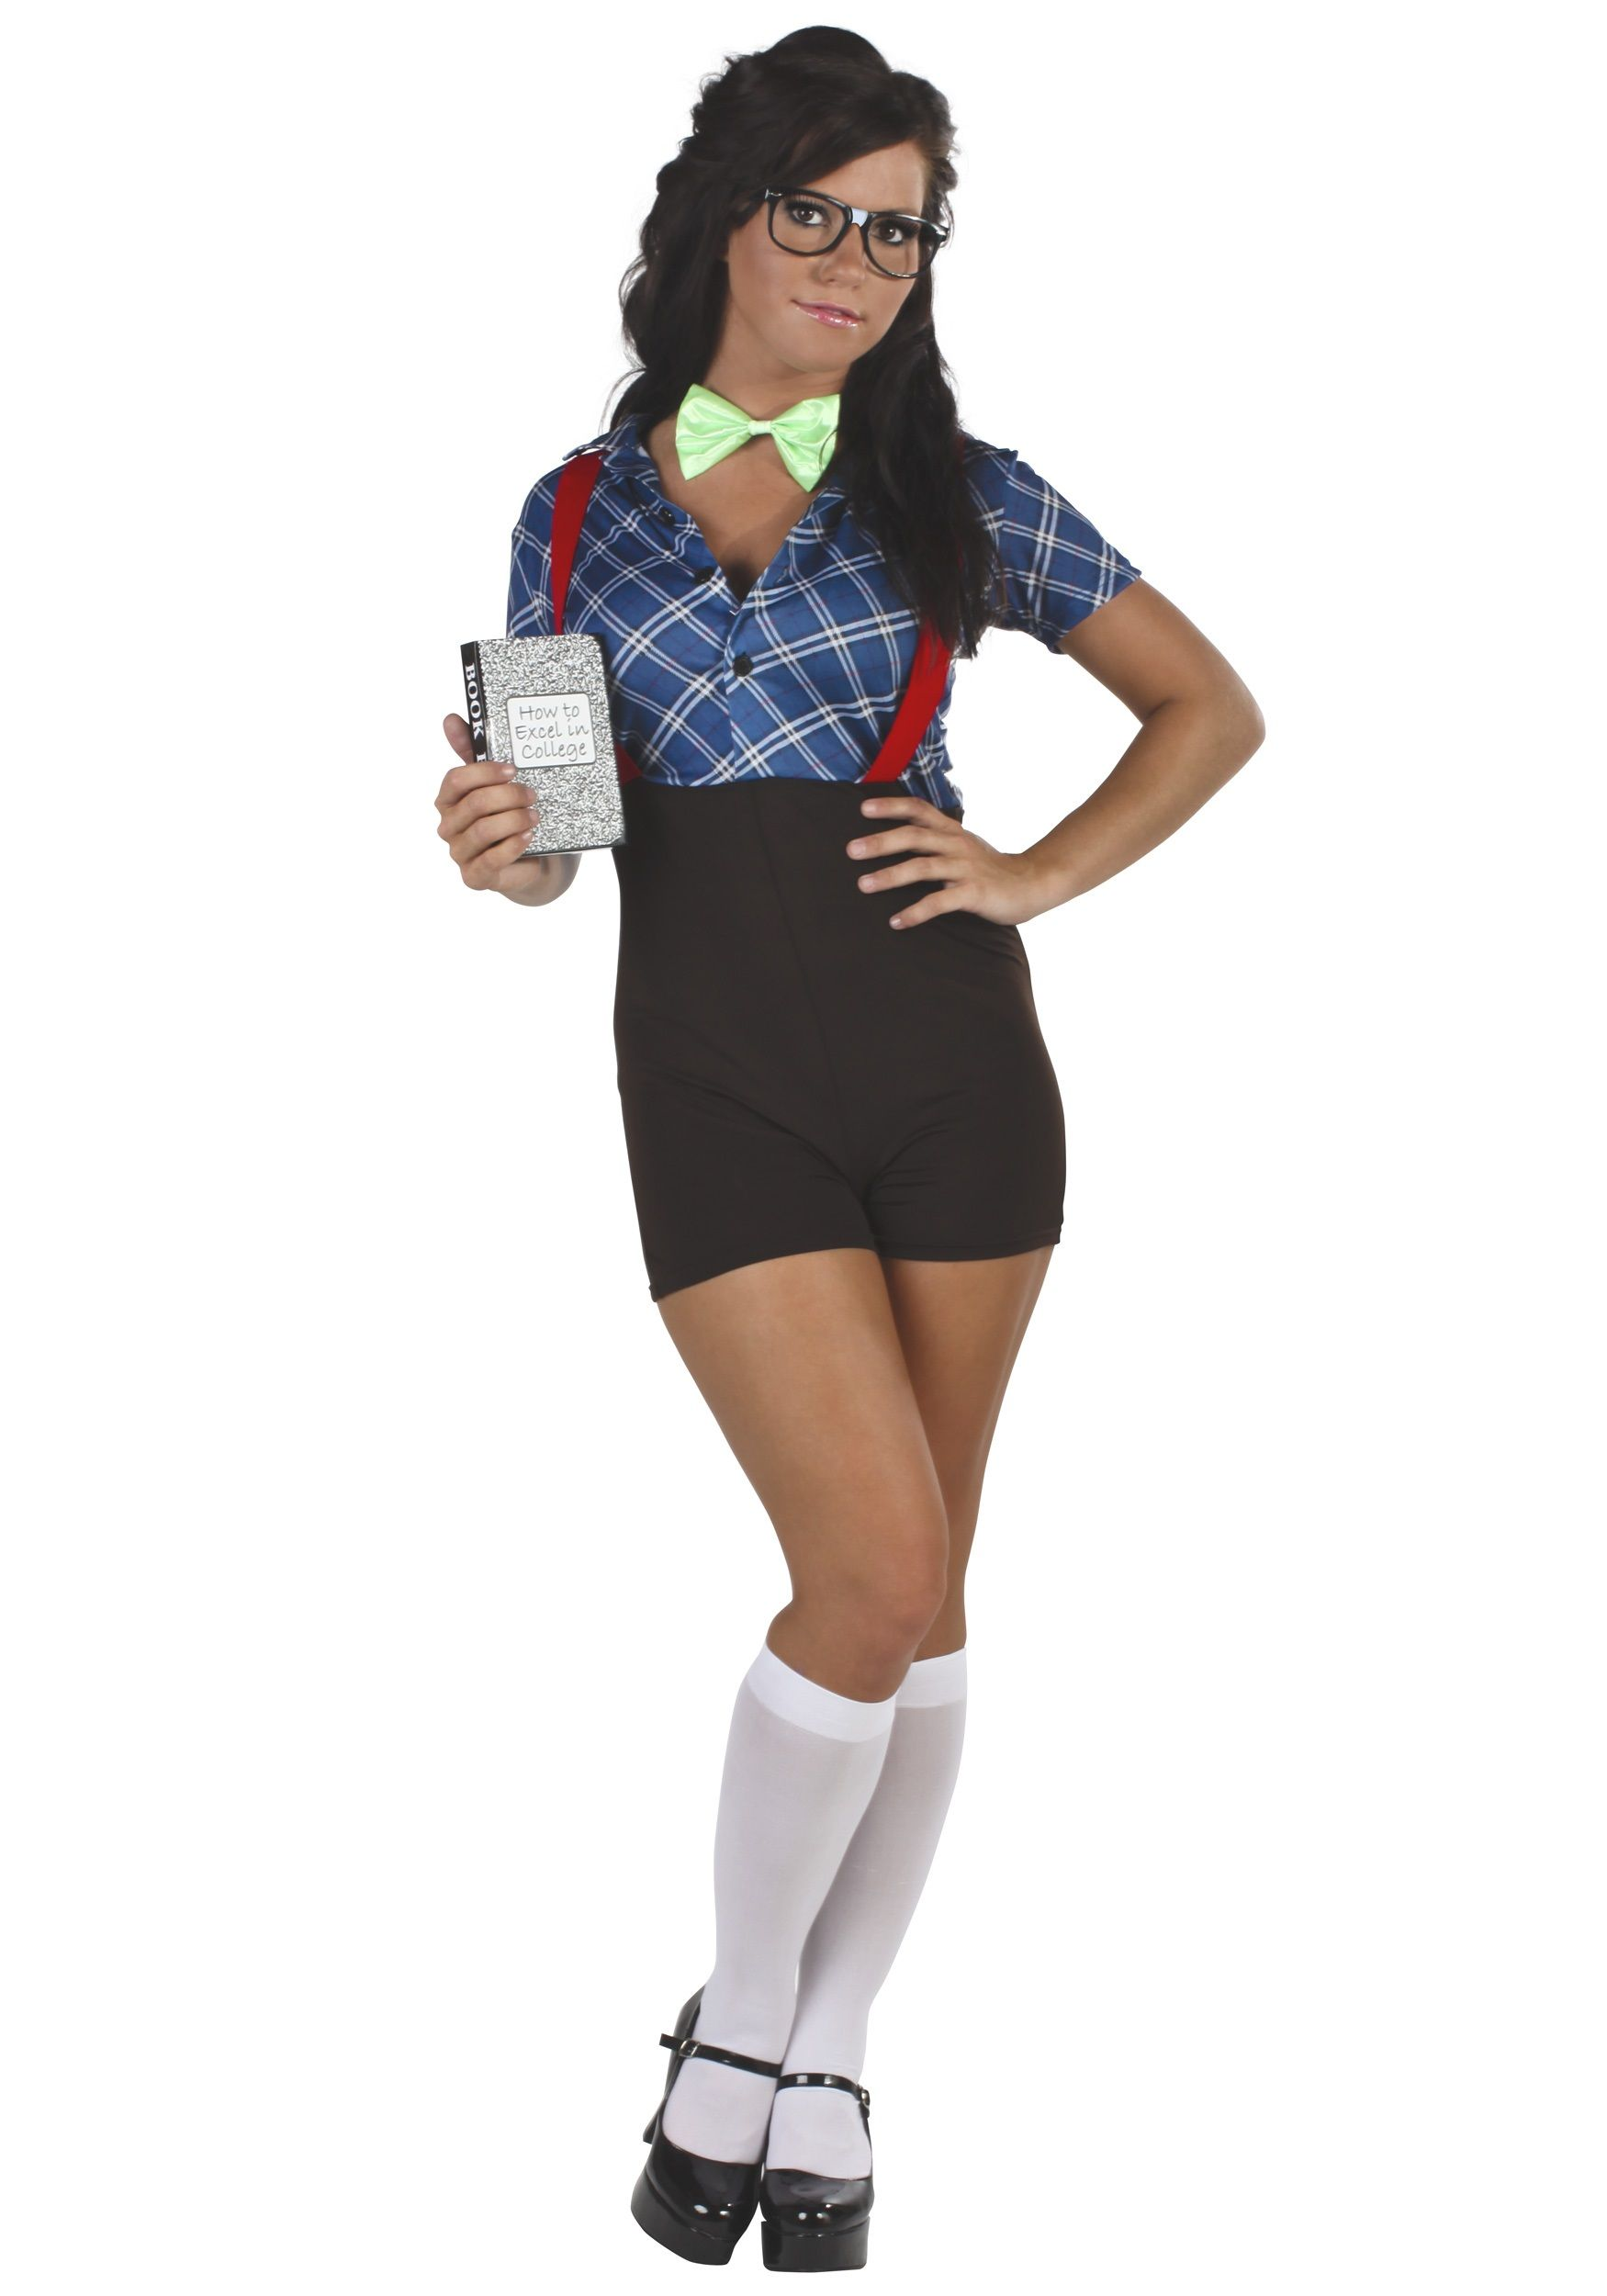 get this sexy school girl nerd costume as a funny halloween costume idea be a cute dork in this sexy nerd costume for women